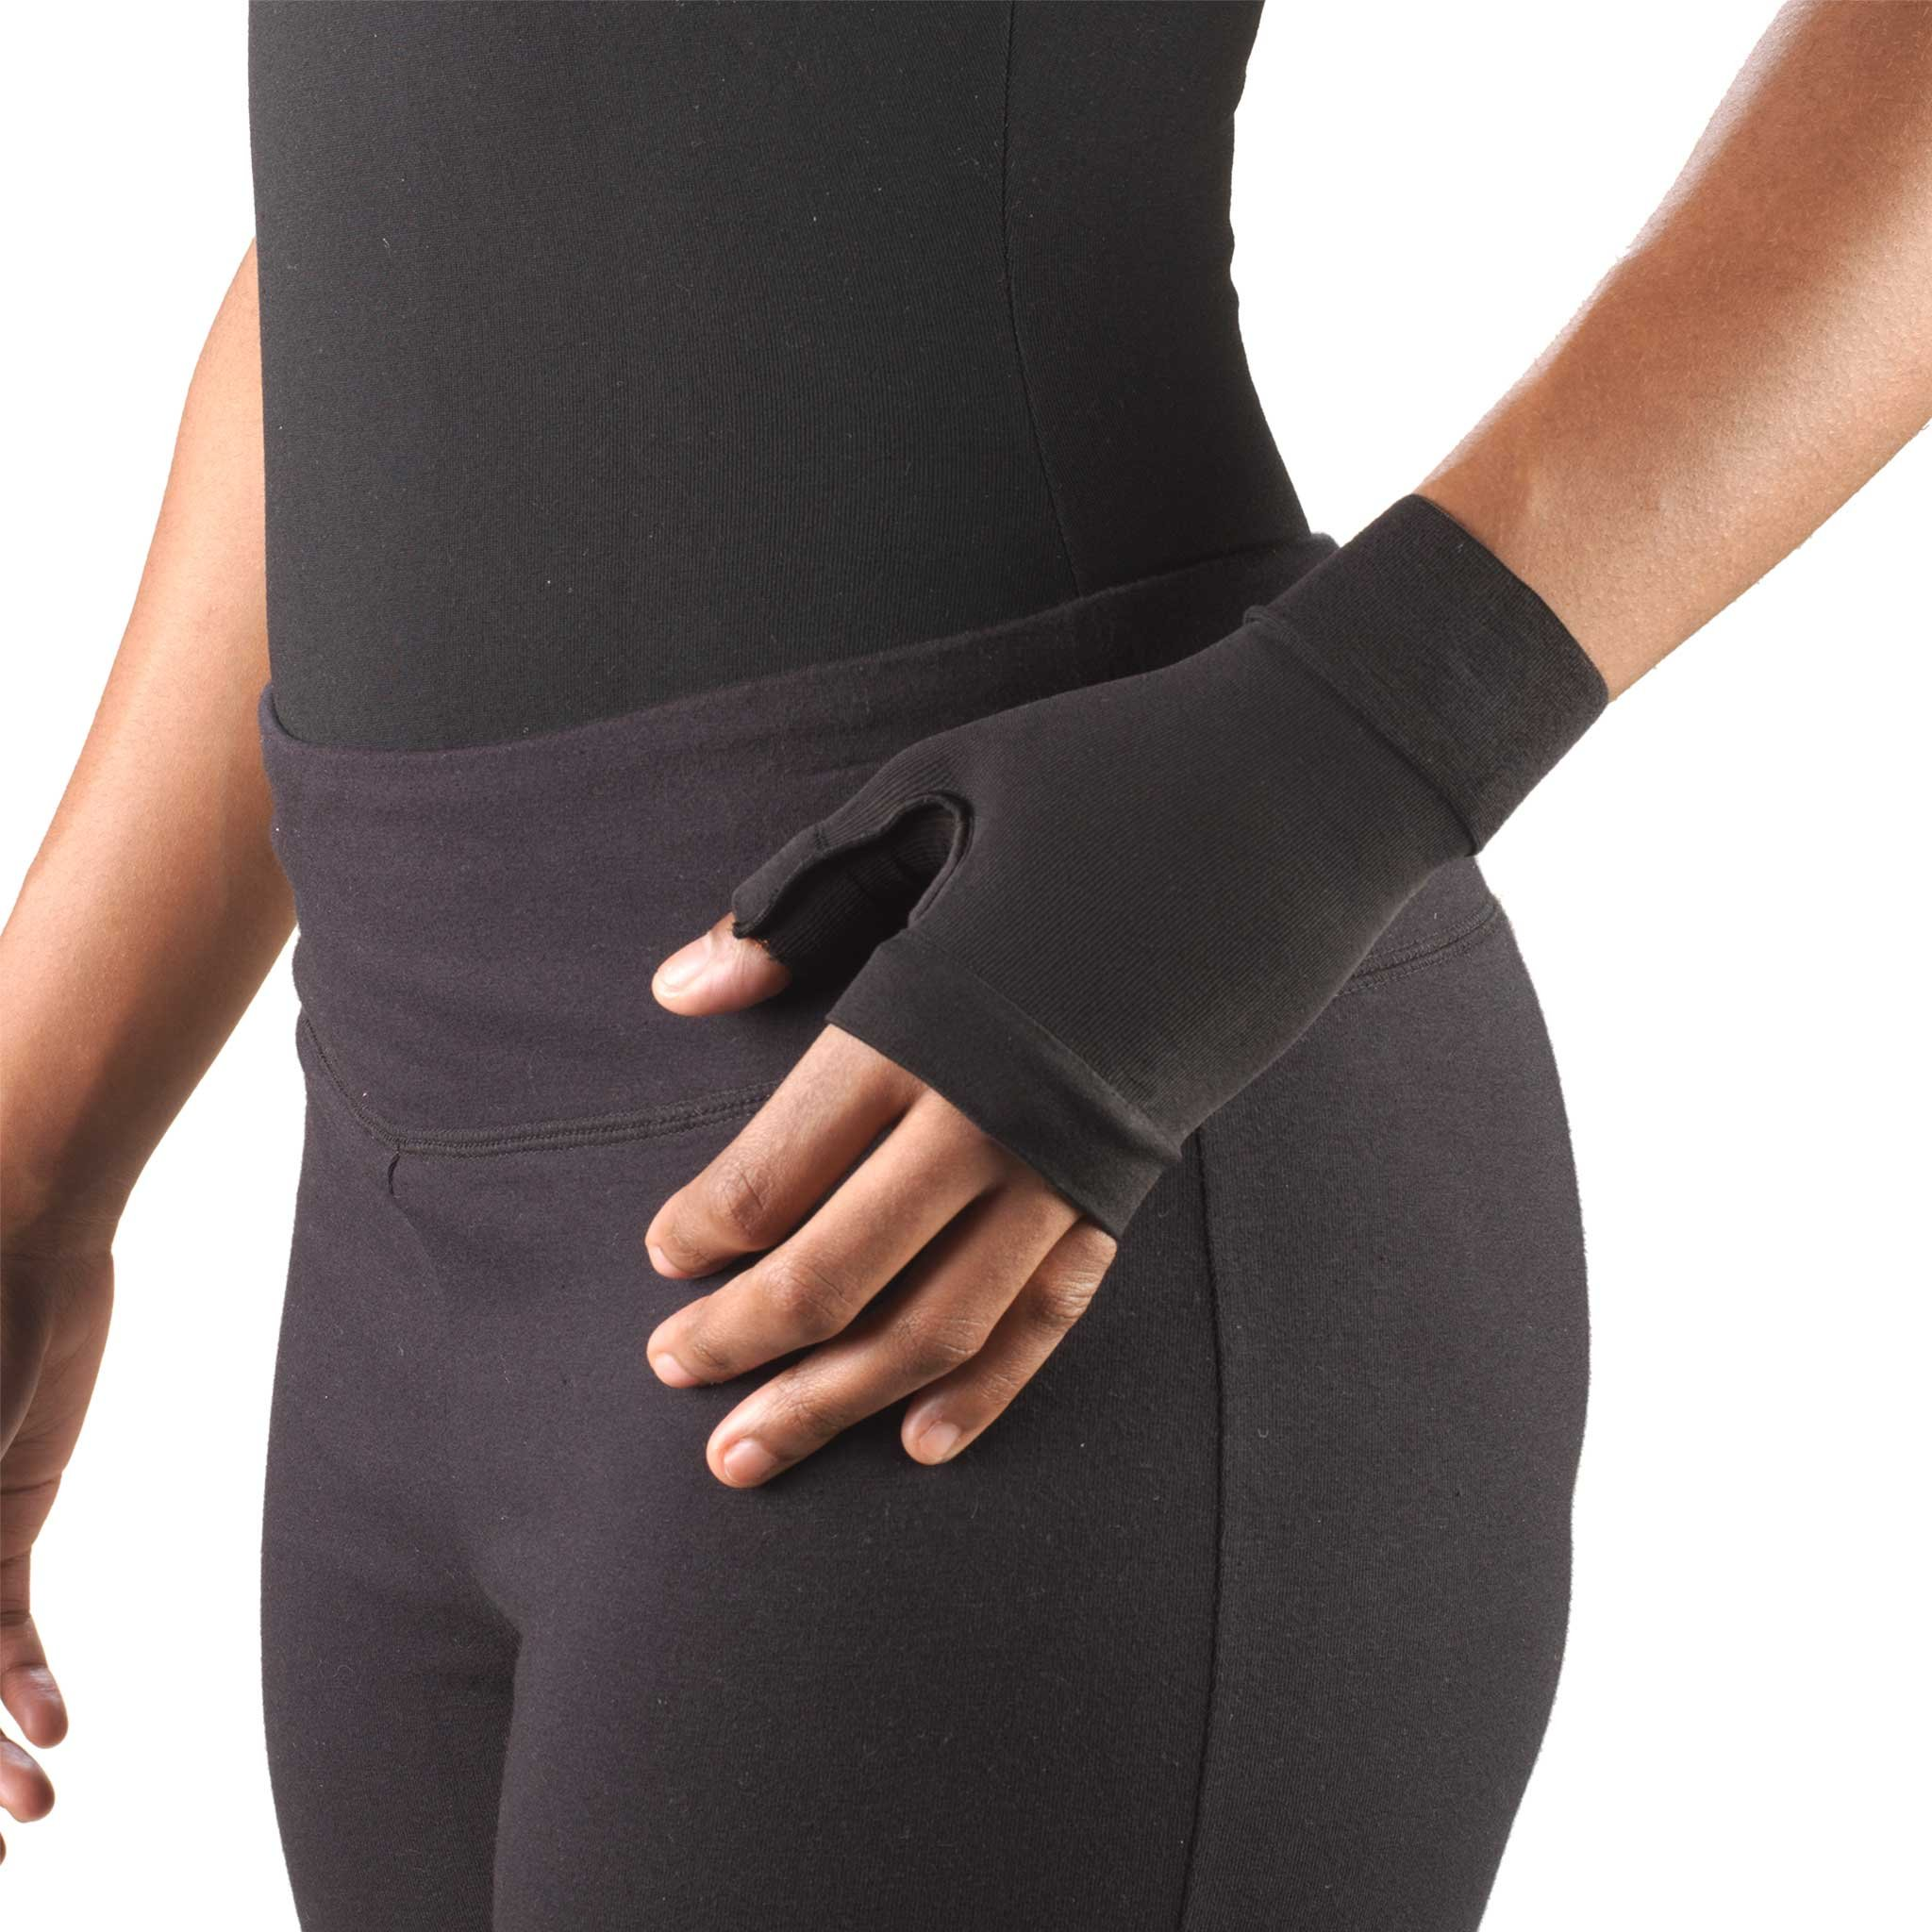 Truform Lymphedema Compression Gauntlet, 20-30 mmHg Post Mastectomy Support, Black, Large (20-30 mmHg)